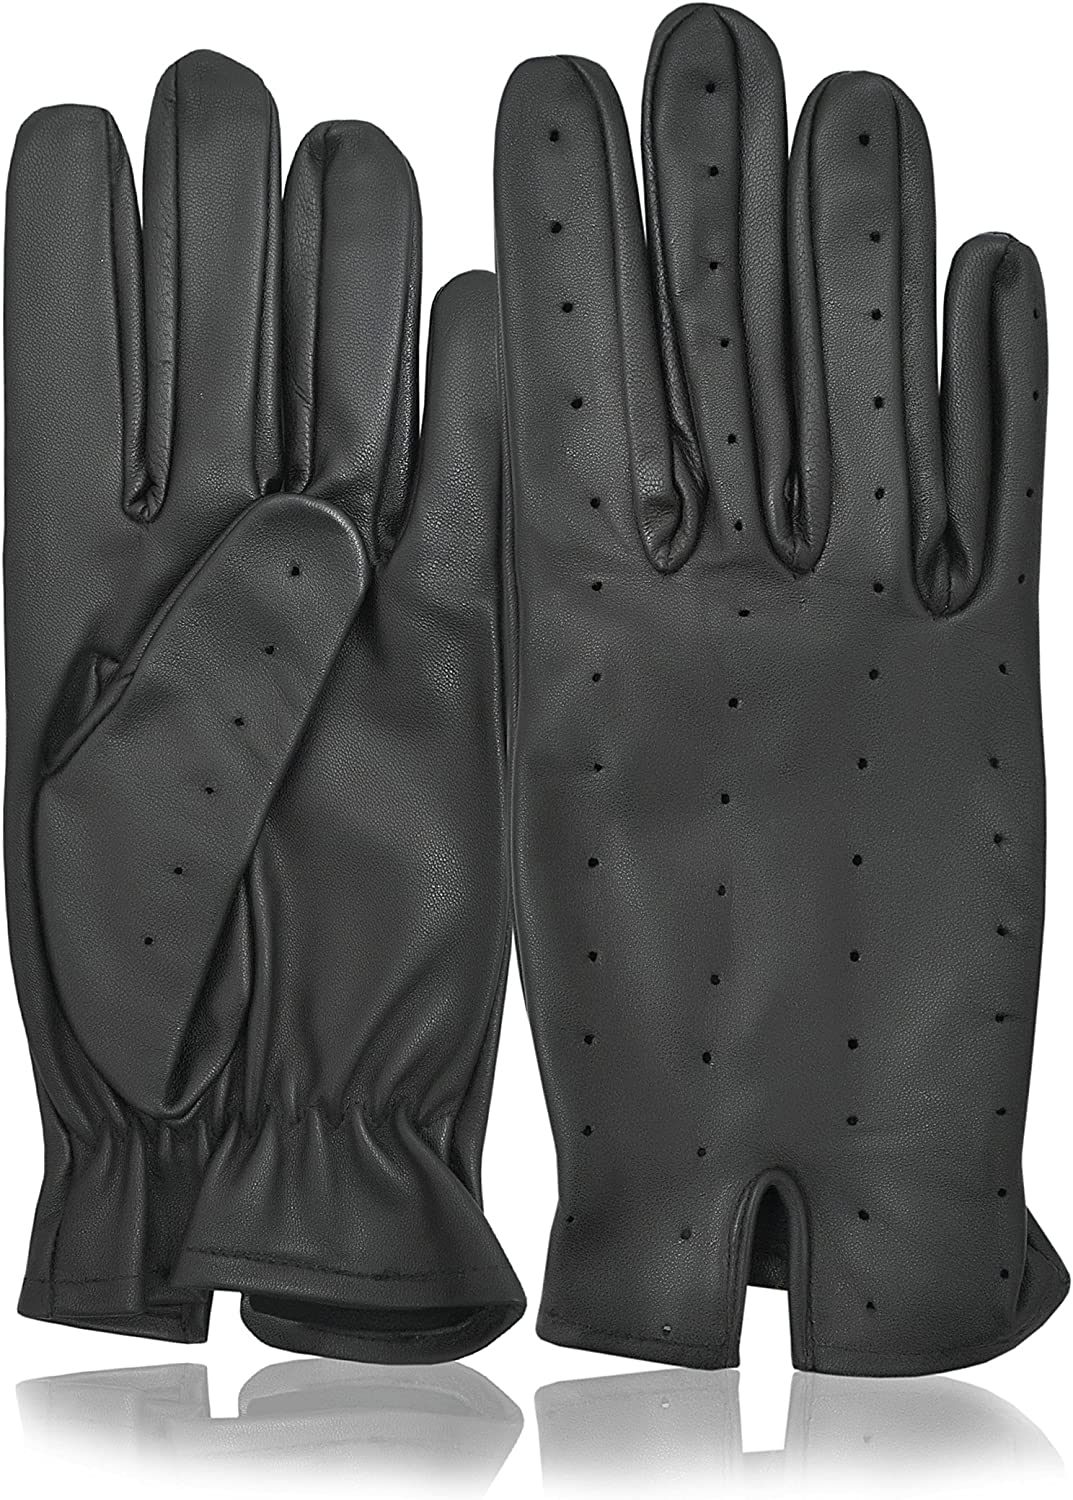 WINTER GENTS DRIVING GLOVES TOP QUALITY SOFT GENUINE REAL LEATHER BLACK  XL